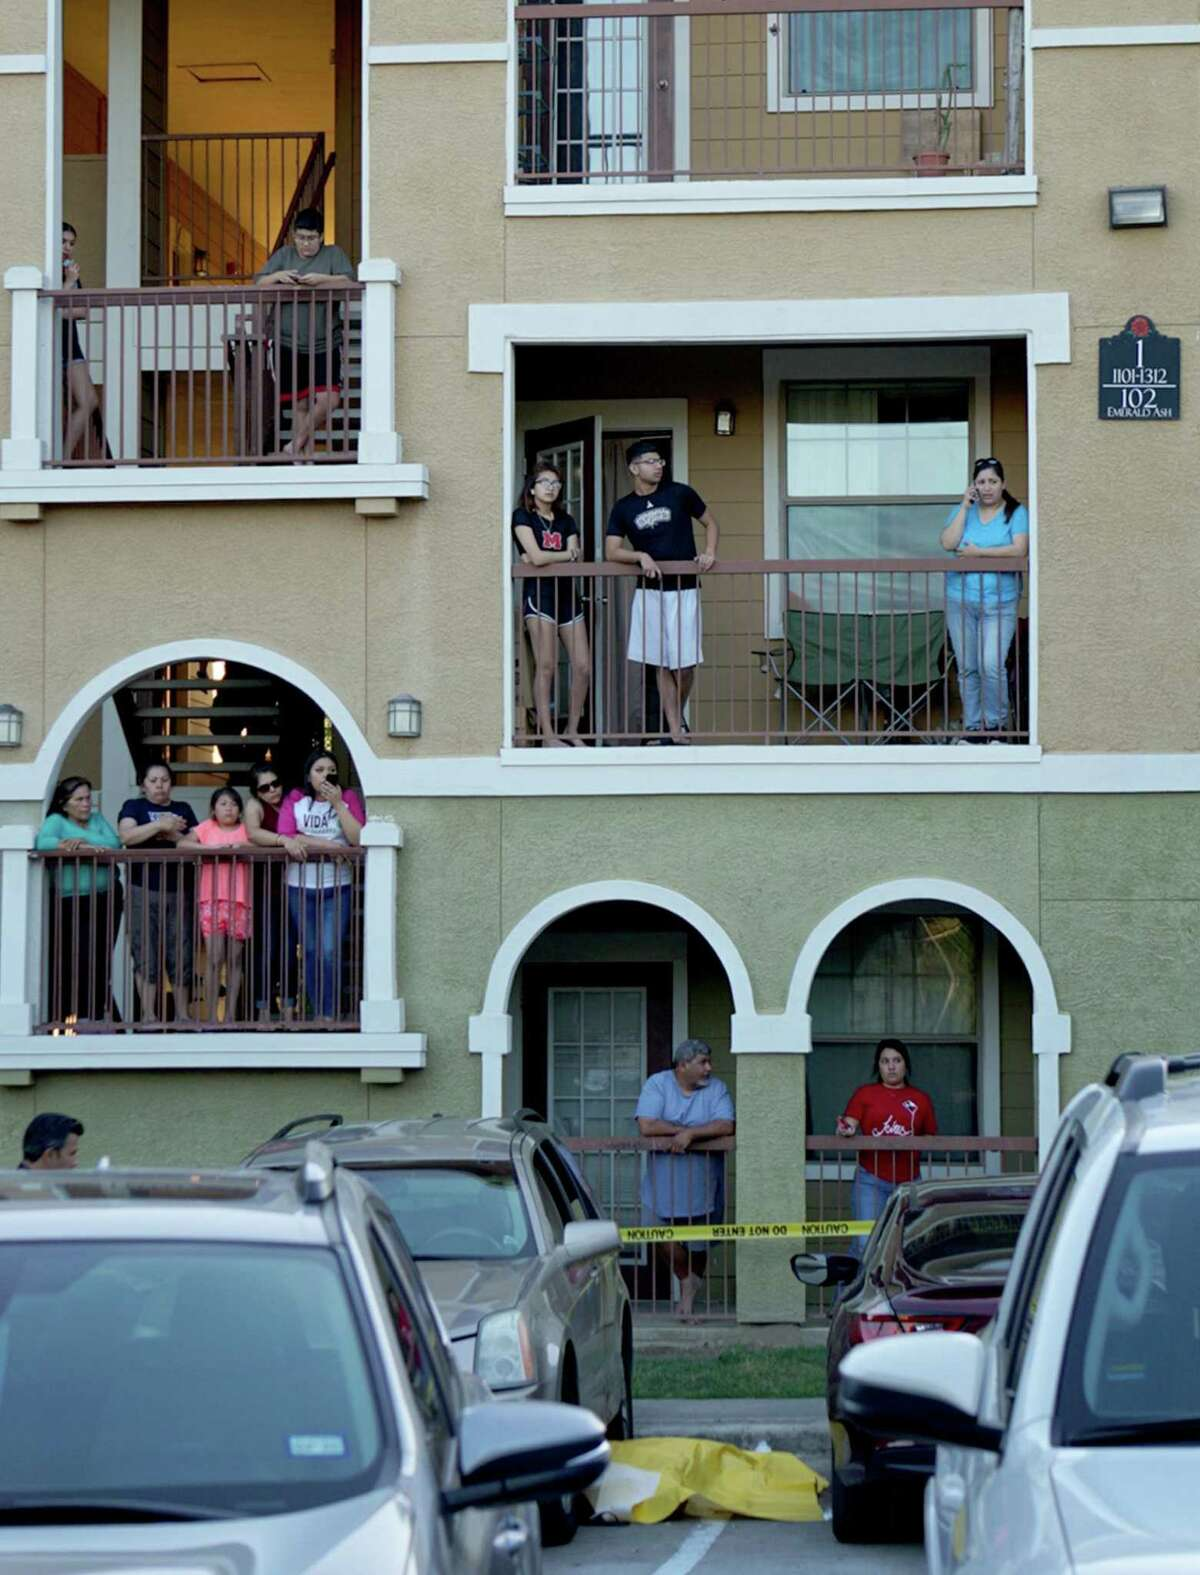 woman was killed Tuesday afternoon in a South Side apartment complex and a second woman is in critical condition. San Antonio Police Department Sgt. Roy Miller said the two women were shot at about 7 p.m. in the parking lot of the Rosemont at University Park apartments, 102 Emerald Ash. The suspect, who police say is a juvenile, fled the scene after the shooting. One woman was pronounced dead at the scene and a second was taken to San Antonio Military Medical Center. Miller said both women appear to be in their 30s.